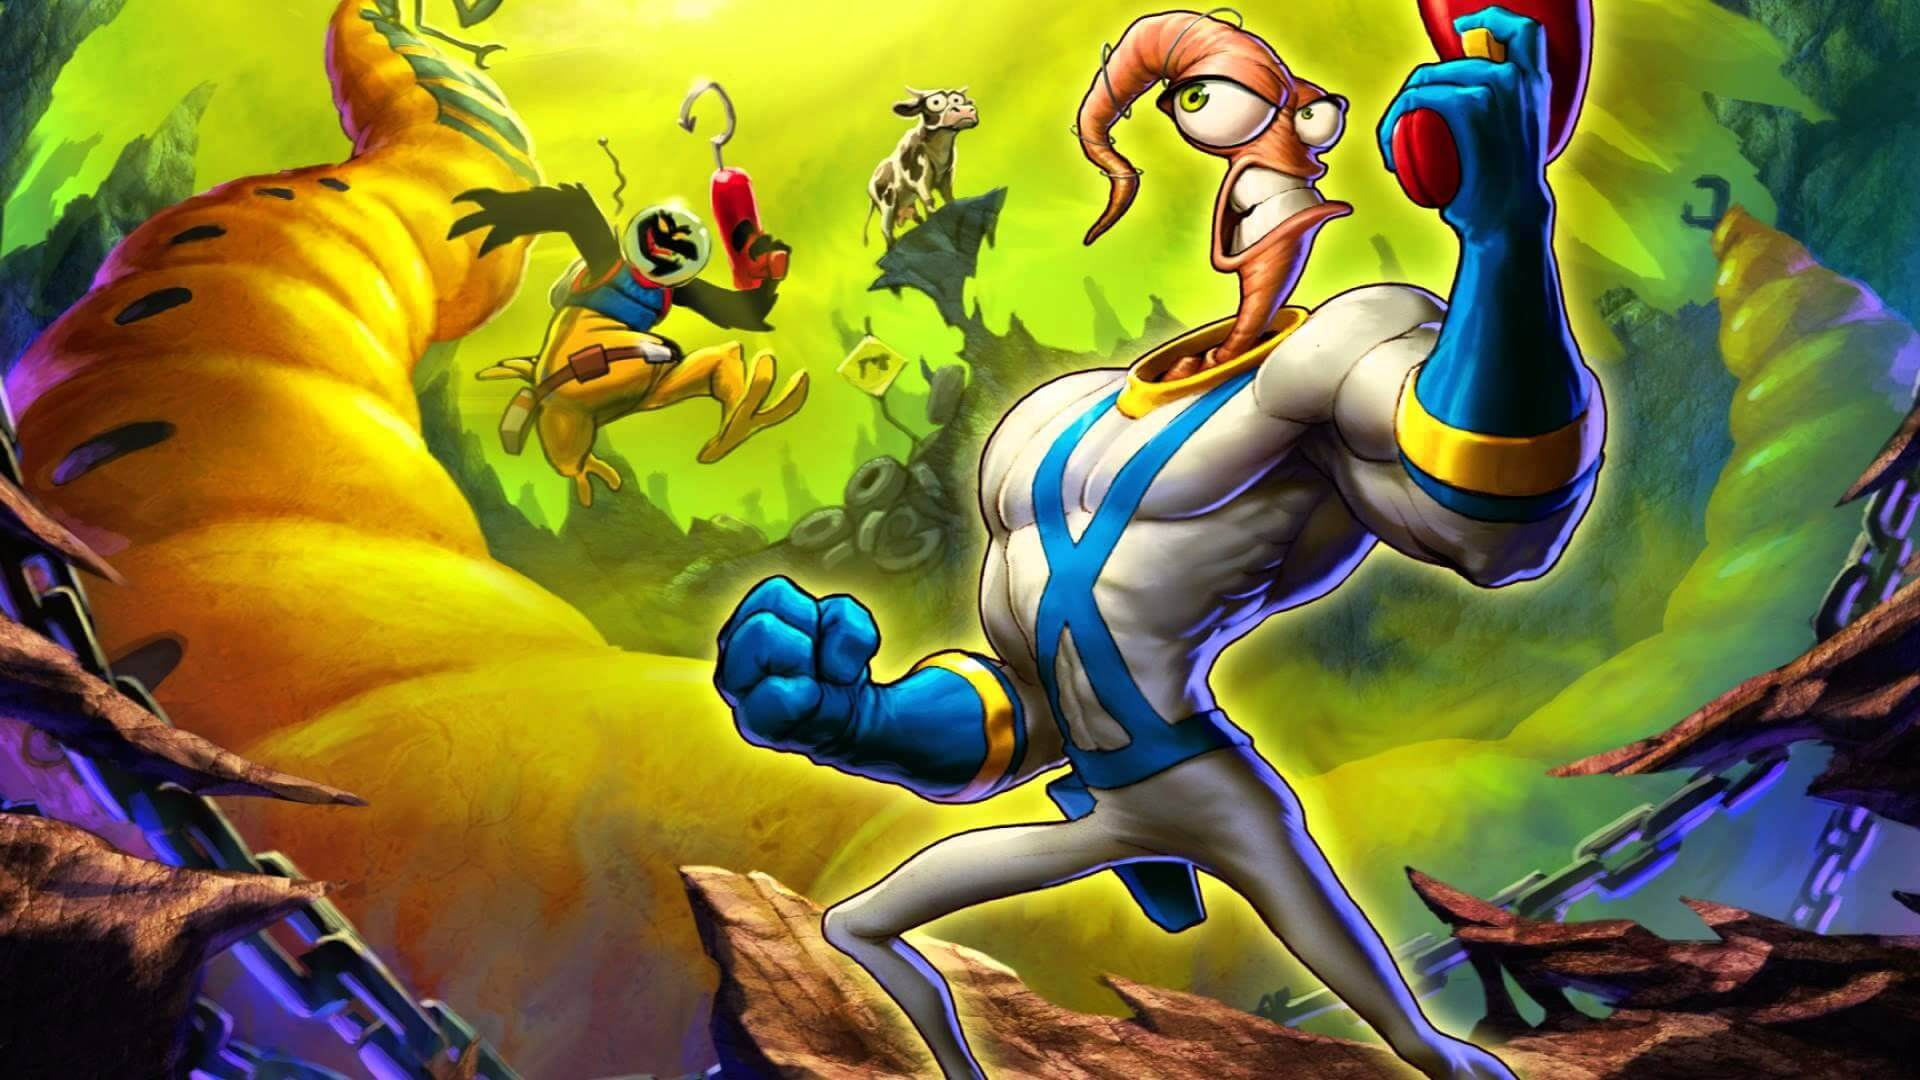 Earthworm Jim is back, but he's locked behind a $150 console